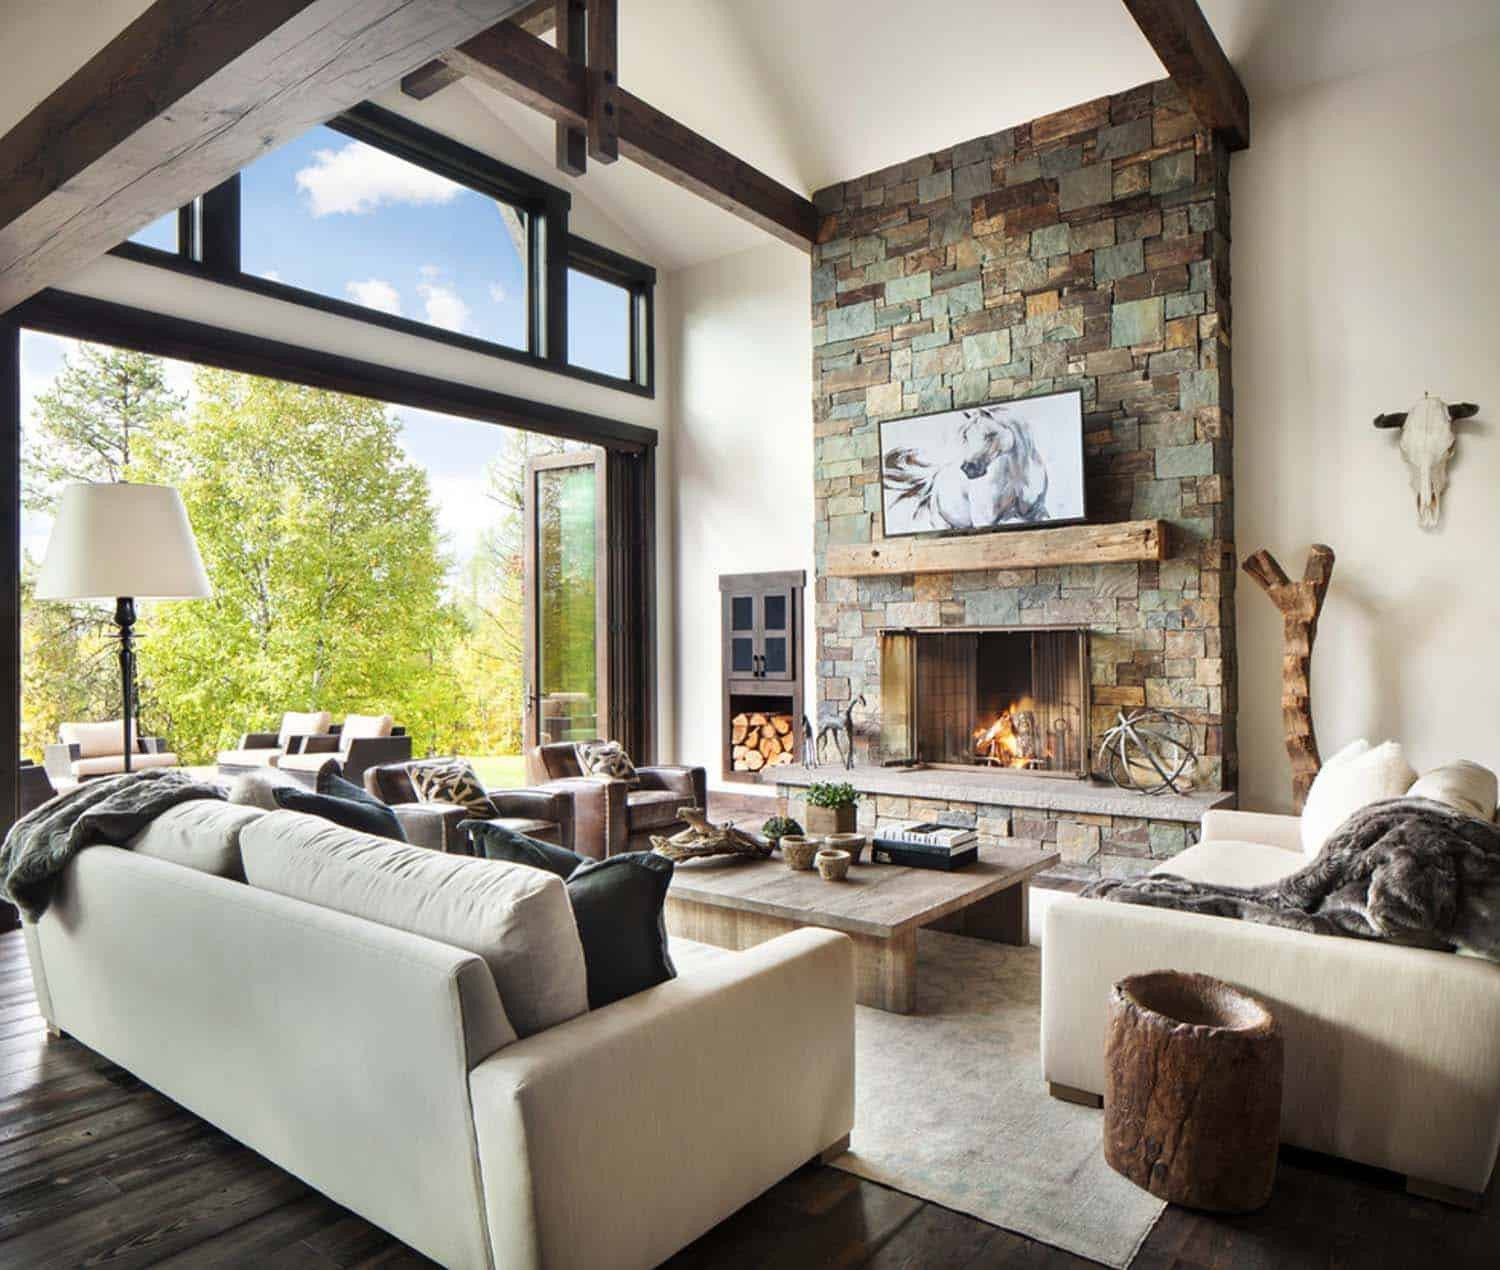 Rustic Modern Decor Living Room Rustic Modern Dwelling Nestled In the northern Rocky Mountains